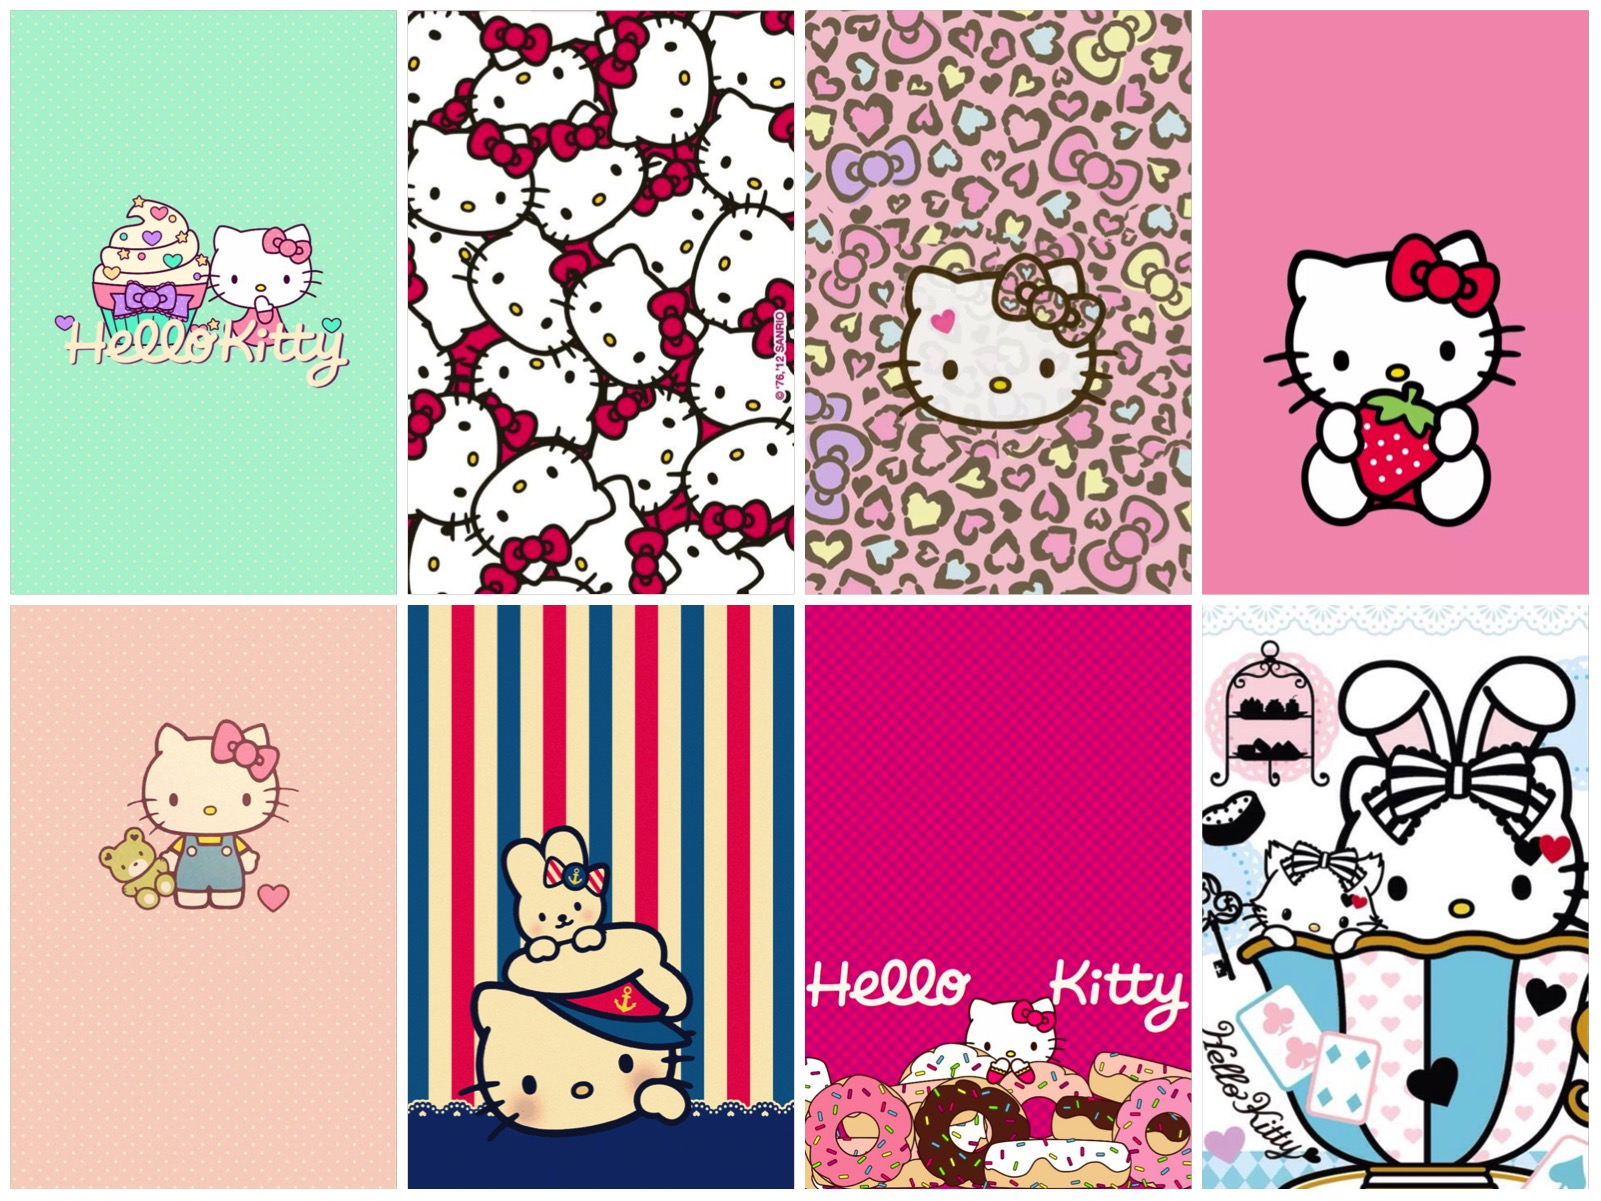 Hello kitty wallpaper and backgrounds 1601x1201 altavistaventures Choice Image